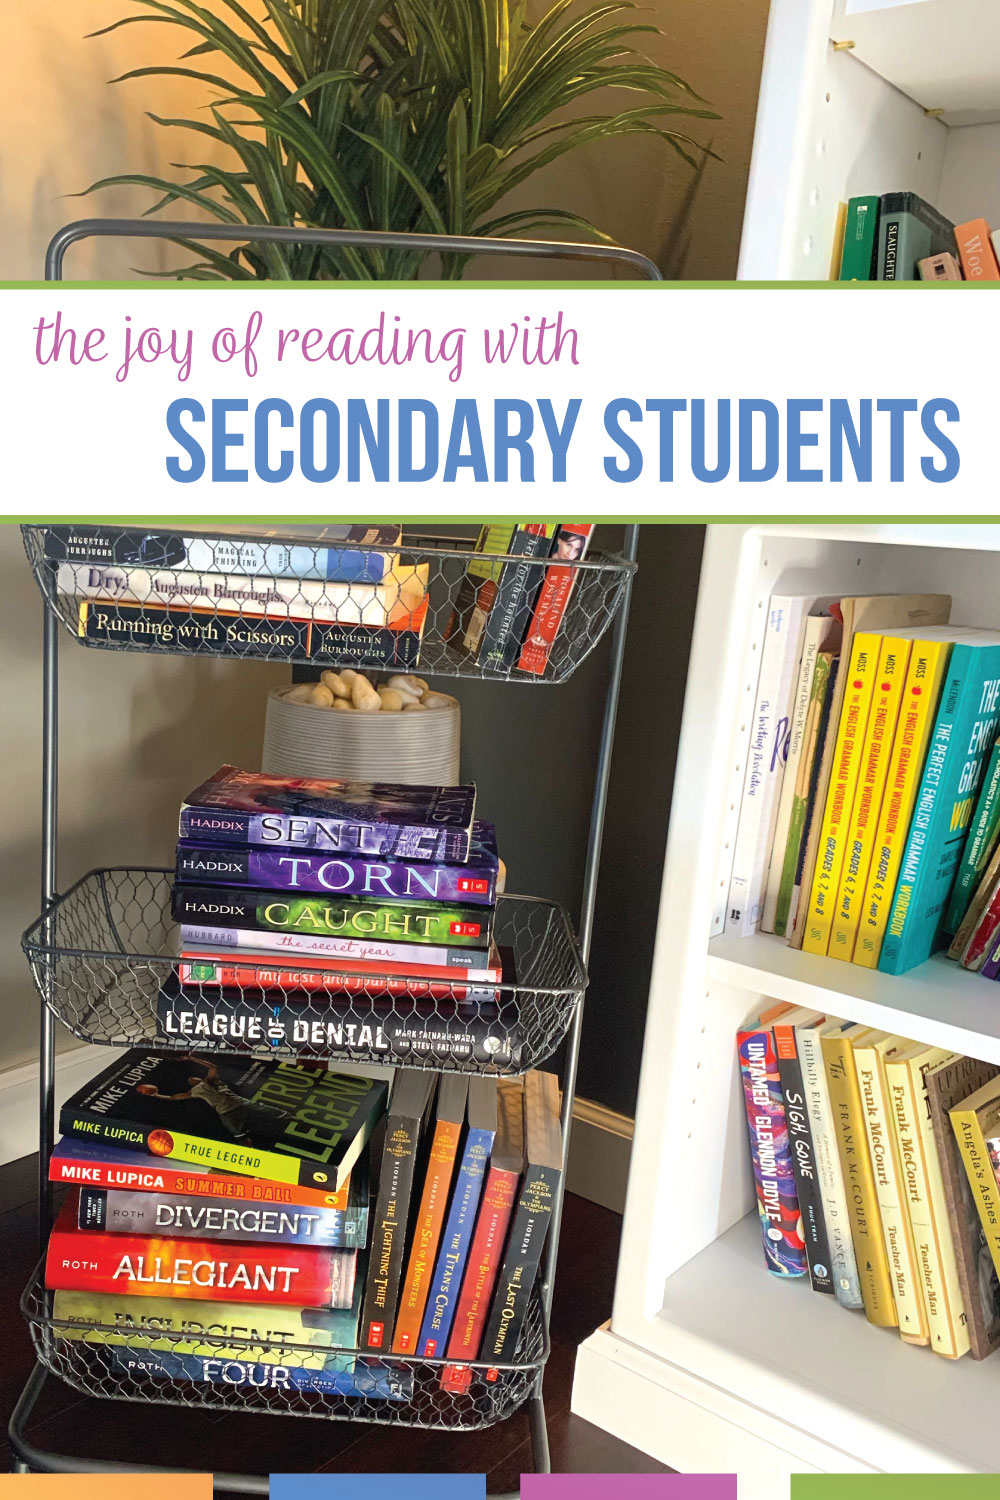 To spread the joy of reading with secondary students, I want students to understand that literature is alive. These ideas to enage students in your classroom library will show literacy is important. With a few small and inexpensive tricks, I engage secondary students in my classroom library. High school ELA students should build reading stamina and discover the joy of reading.